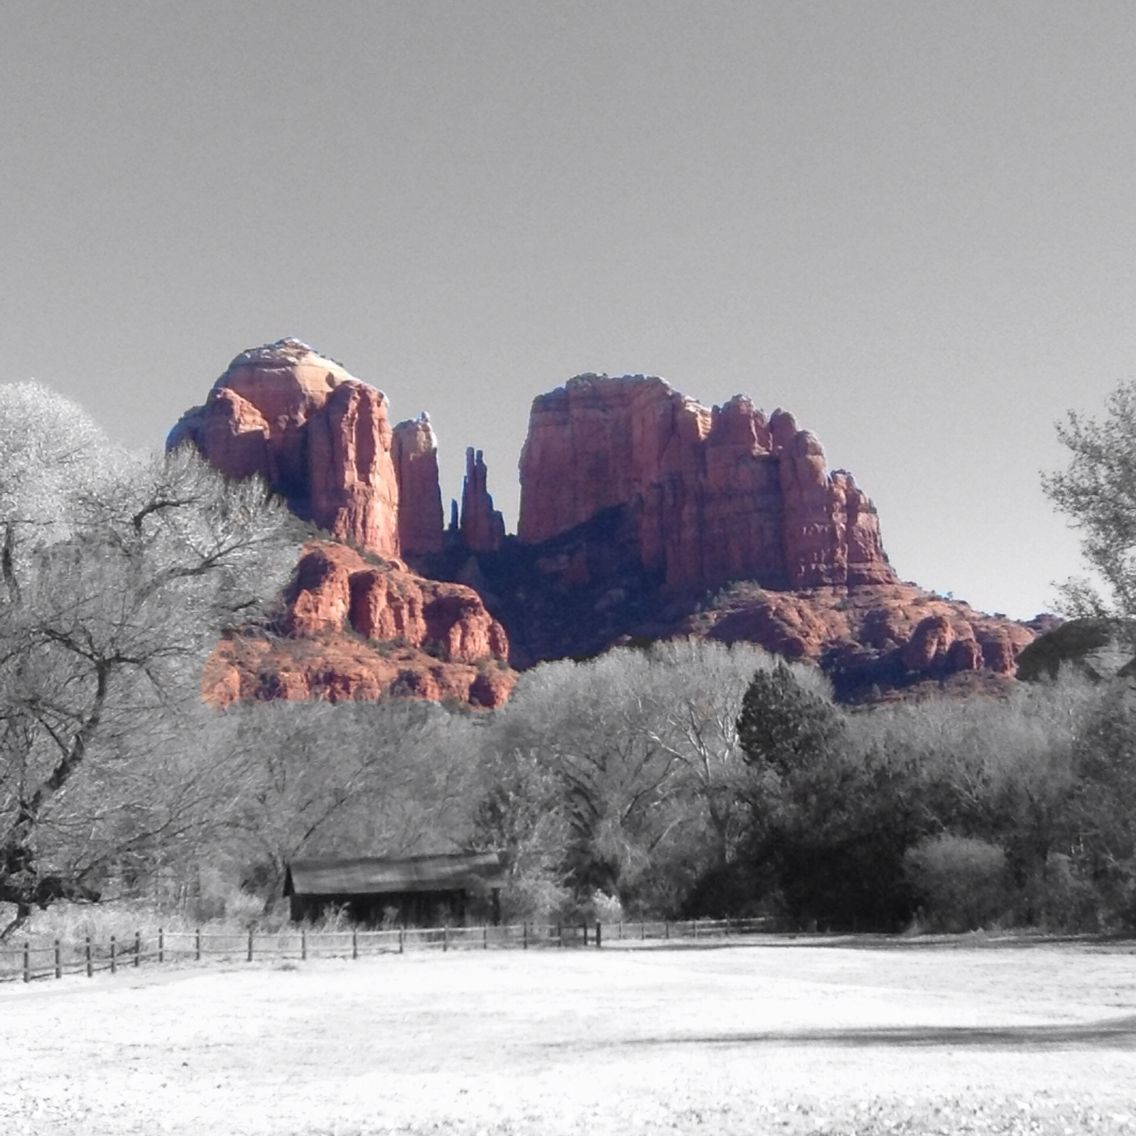 Was in Sedona, AZ yesterday. Took some good pics and edited this one.